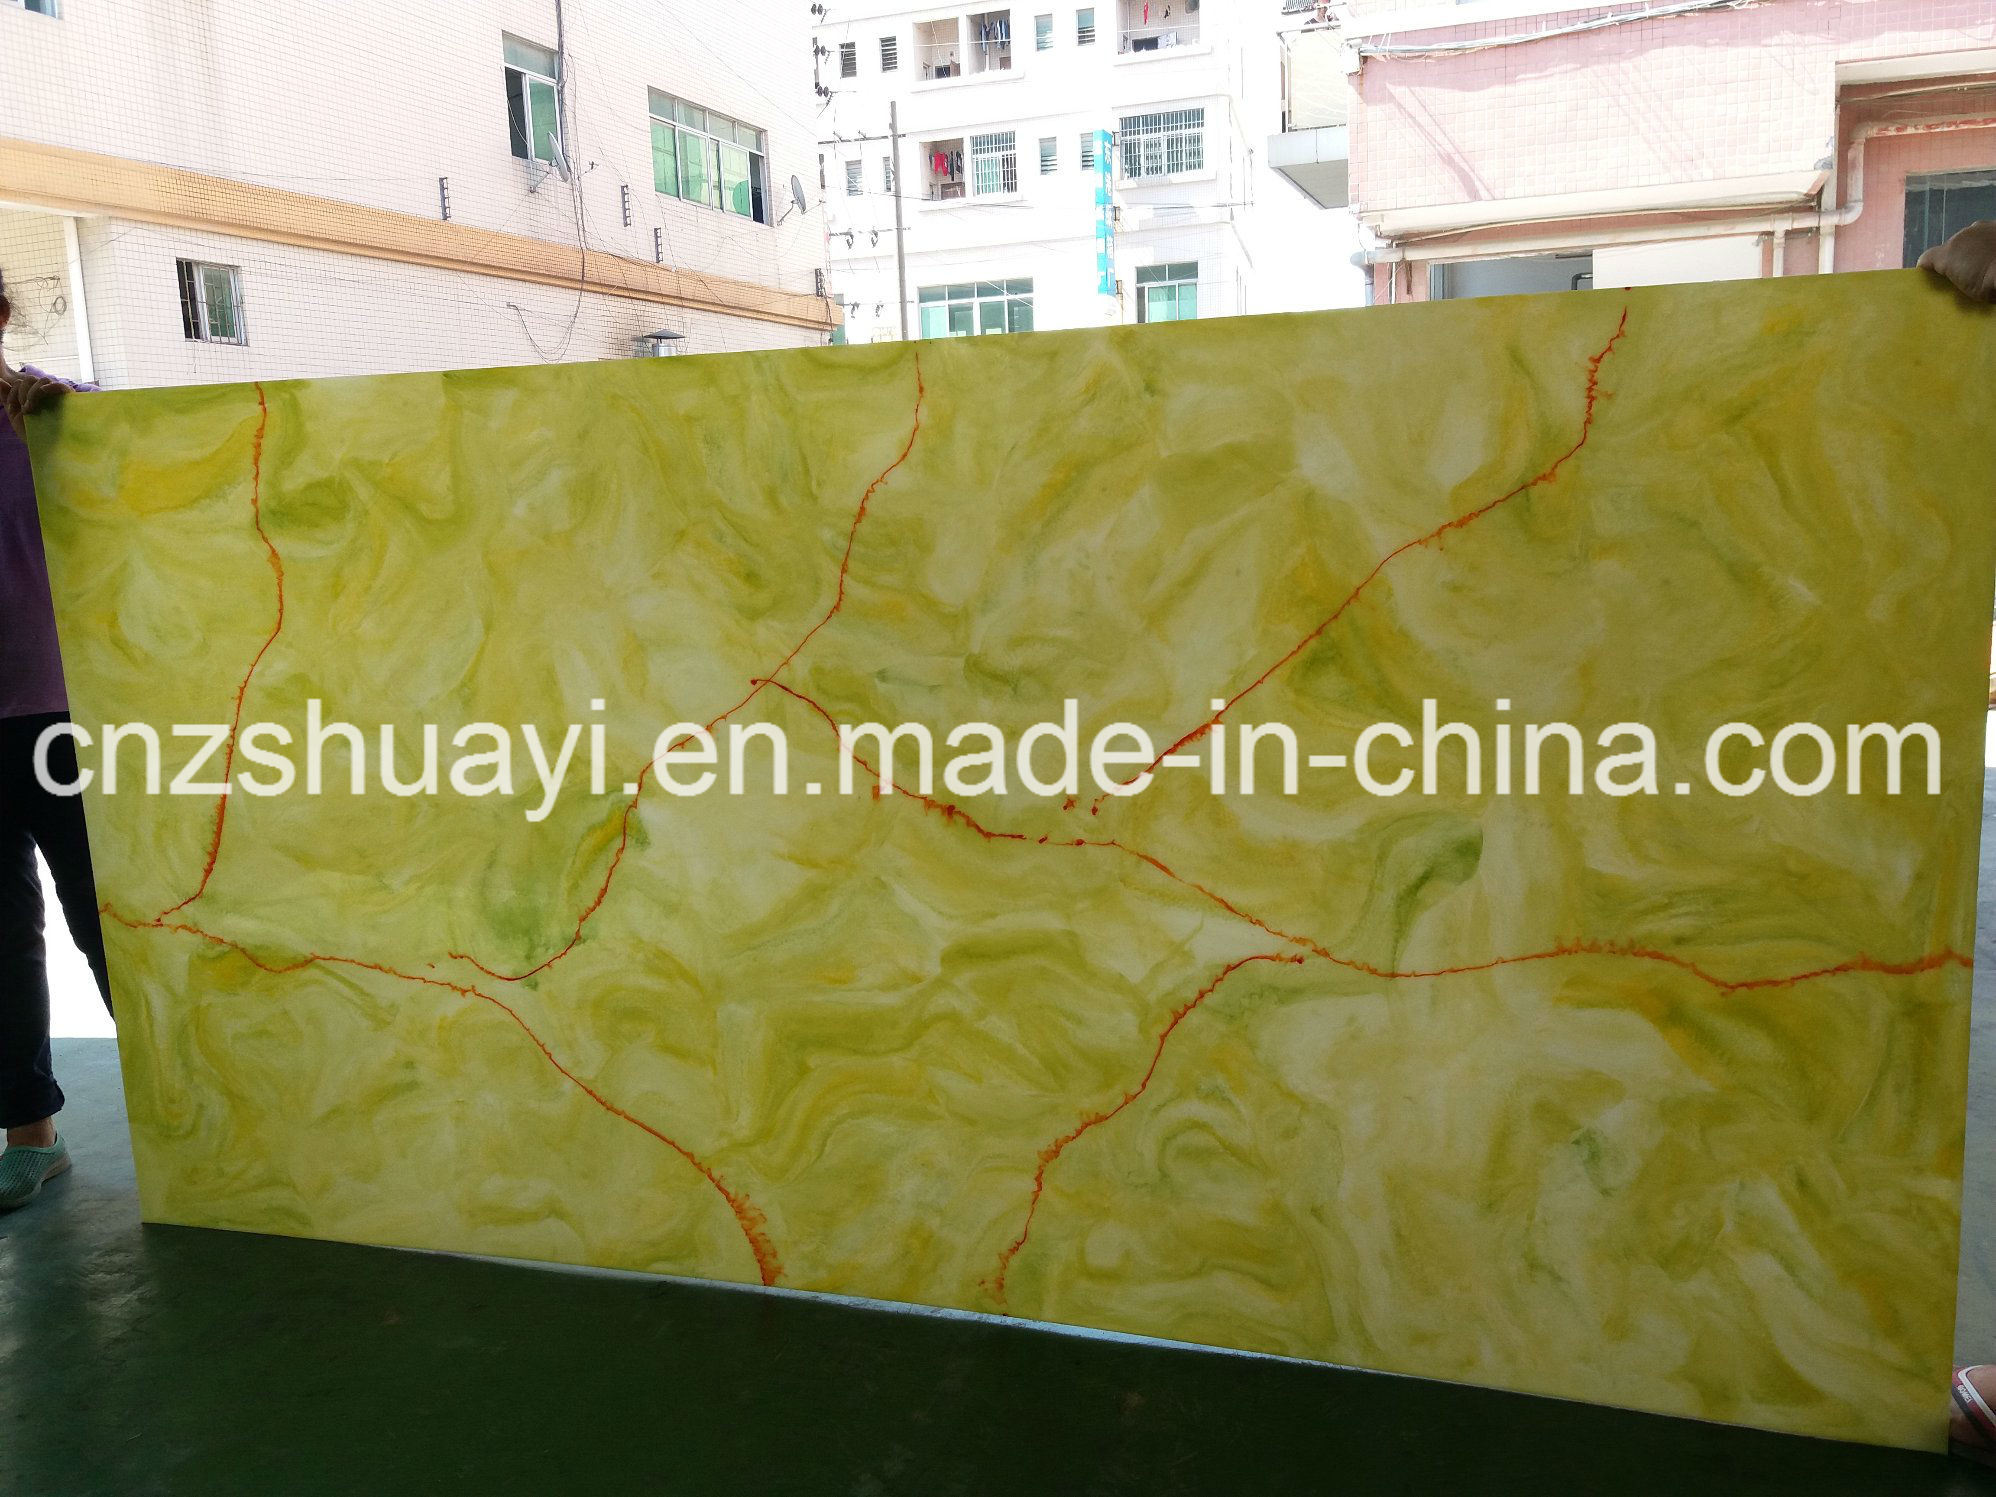 Colorful Decorative Wall Panels For Kitchen Image Collection - Wall ...